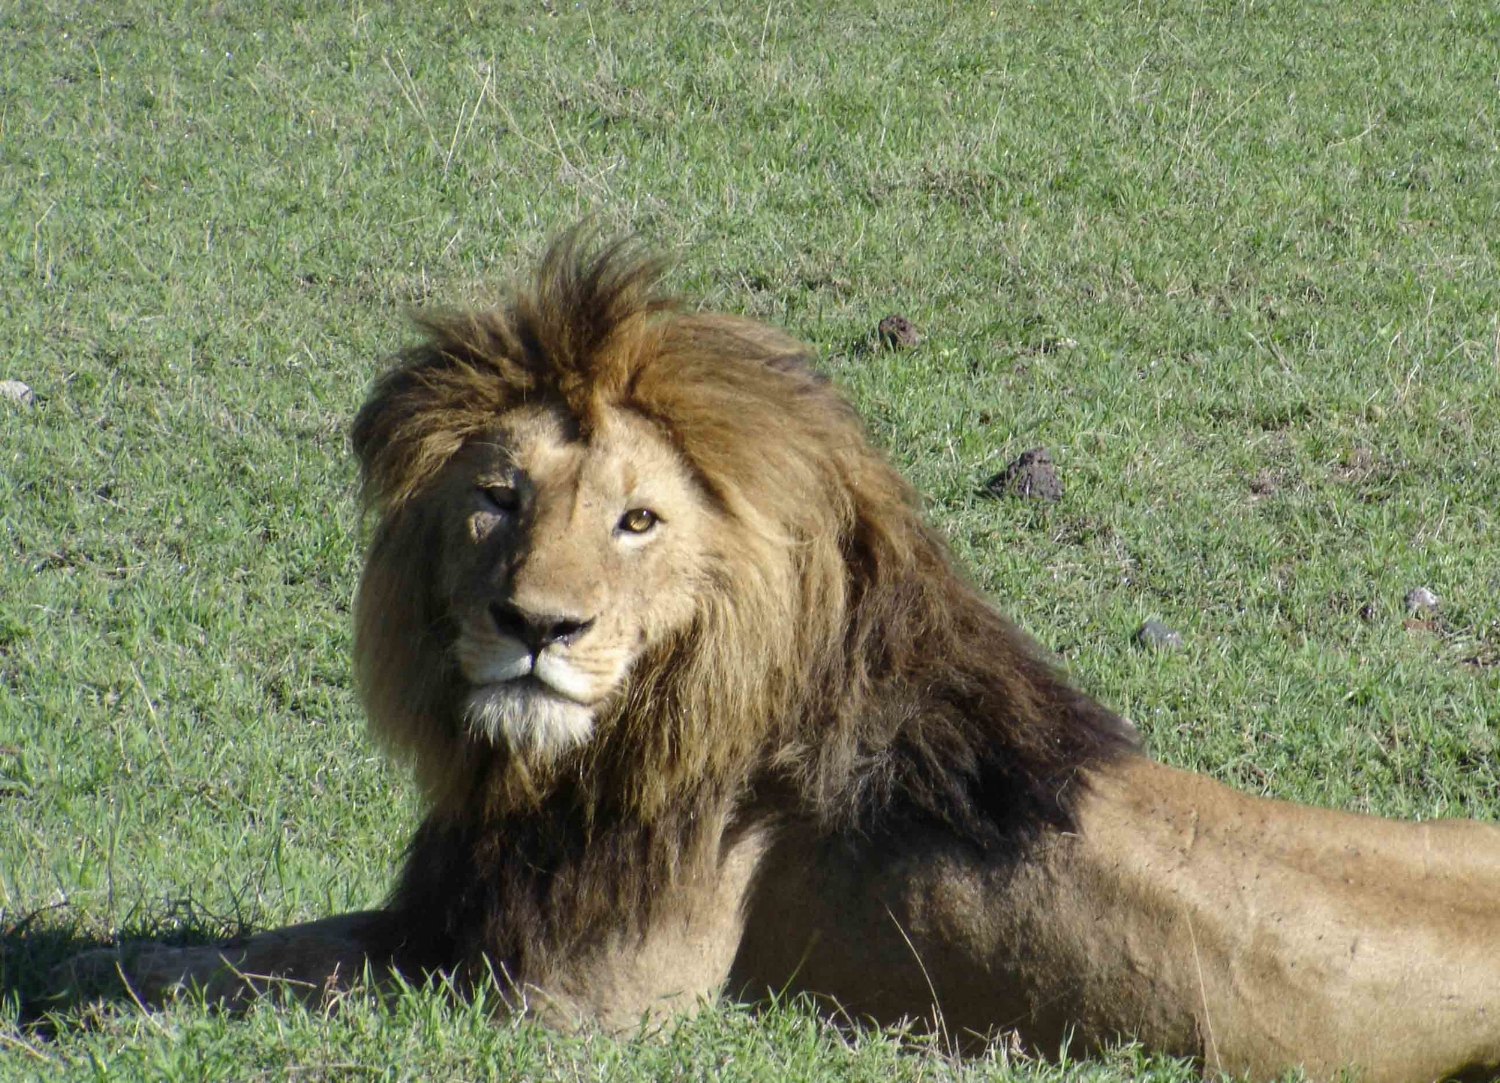 Male Lion, Ngorongoro Crater